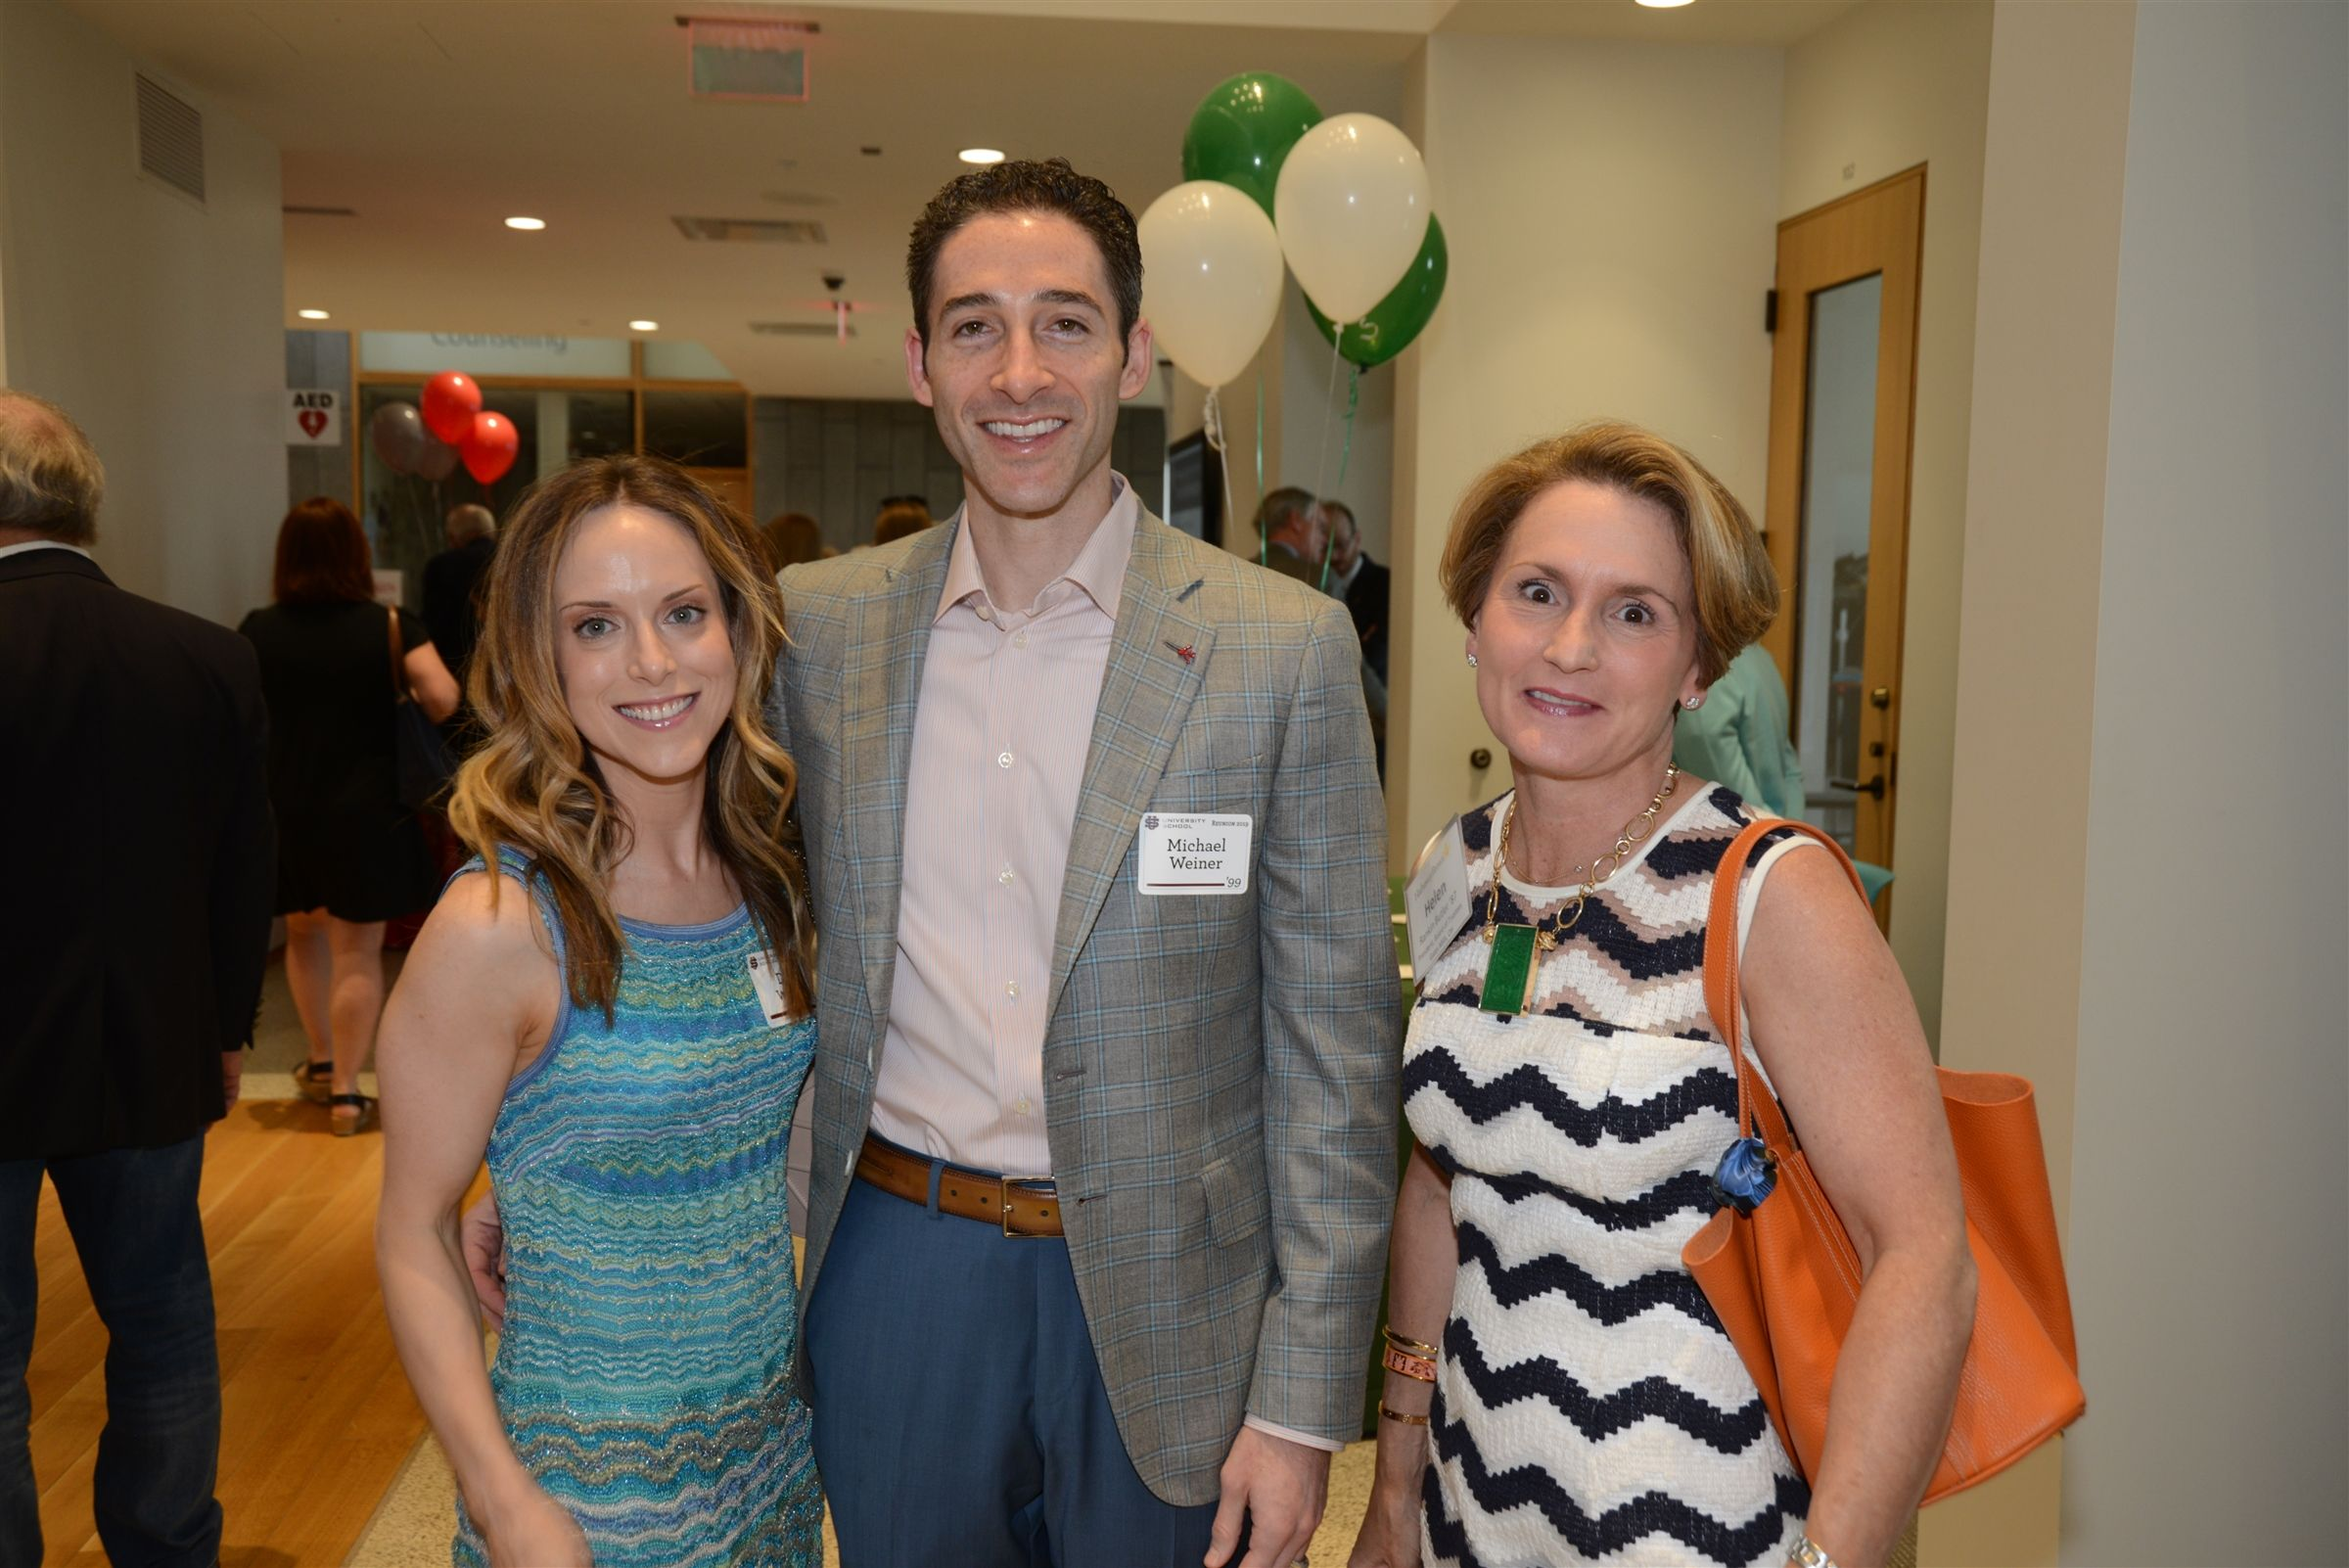 Danielle and Michael Weiner '99 join Helen Rankin Butler at the Four School Reception.